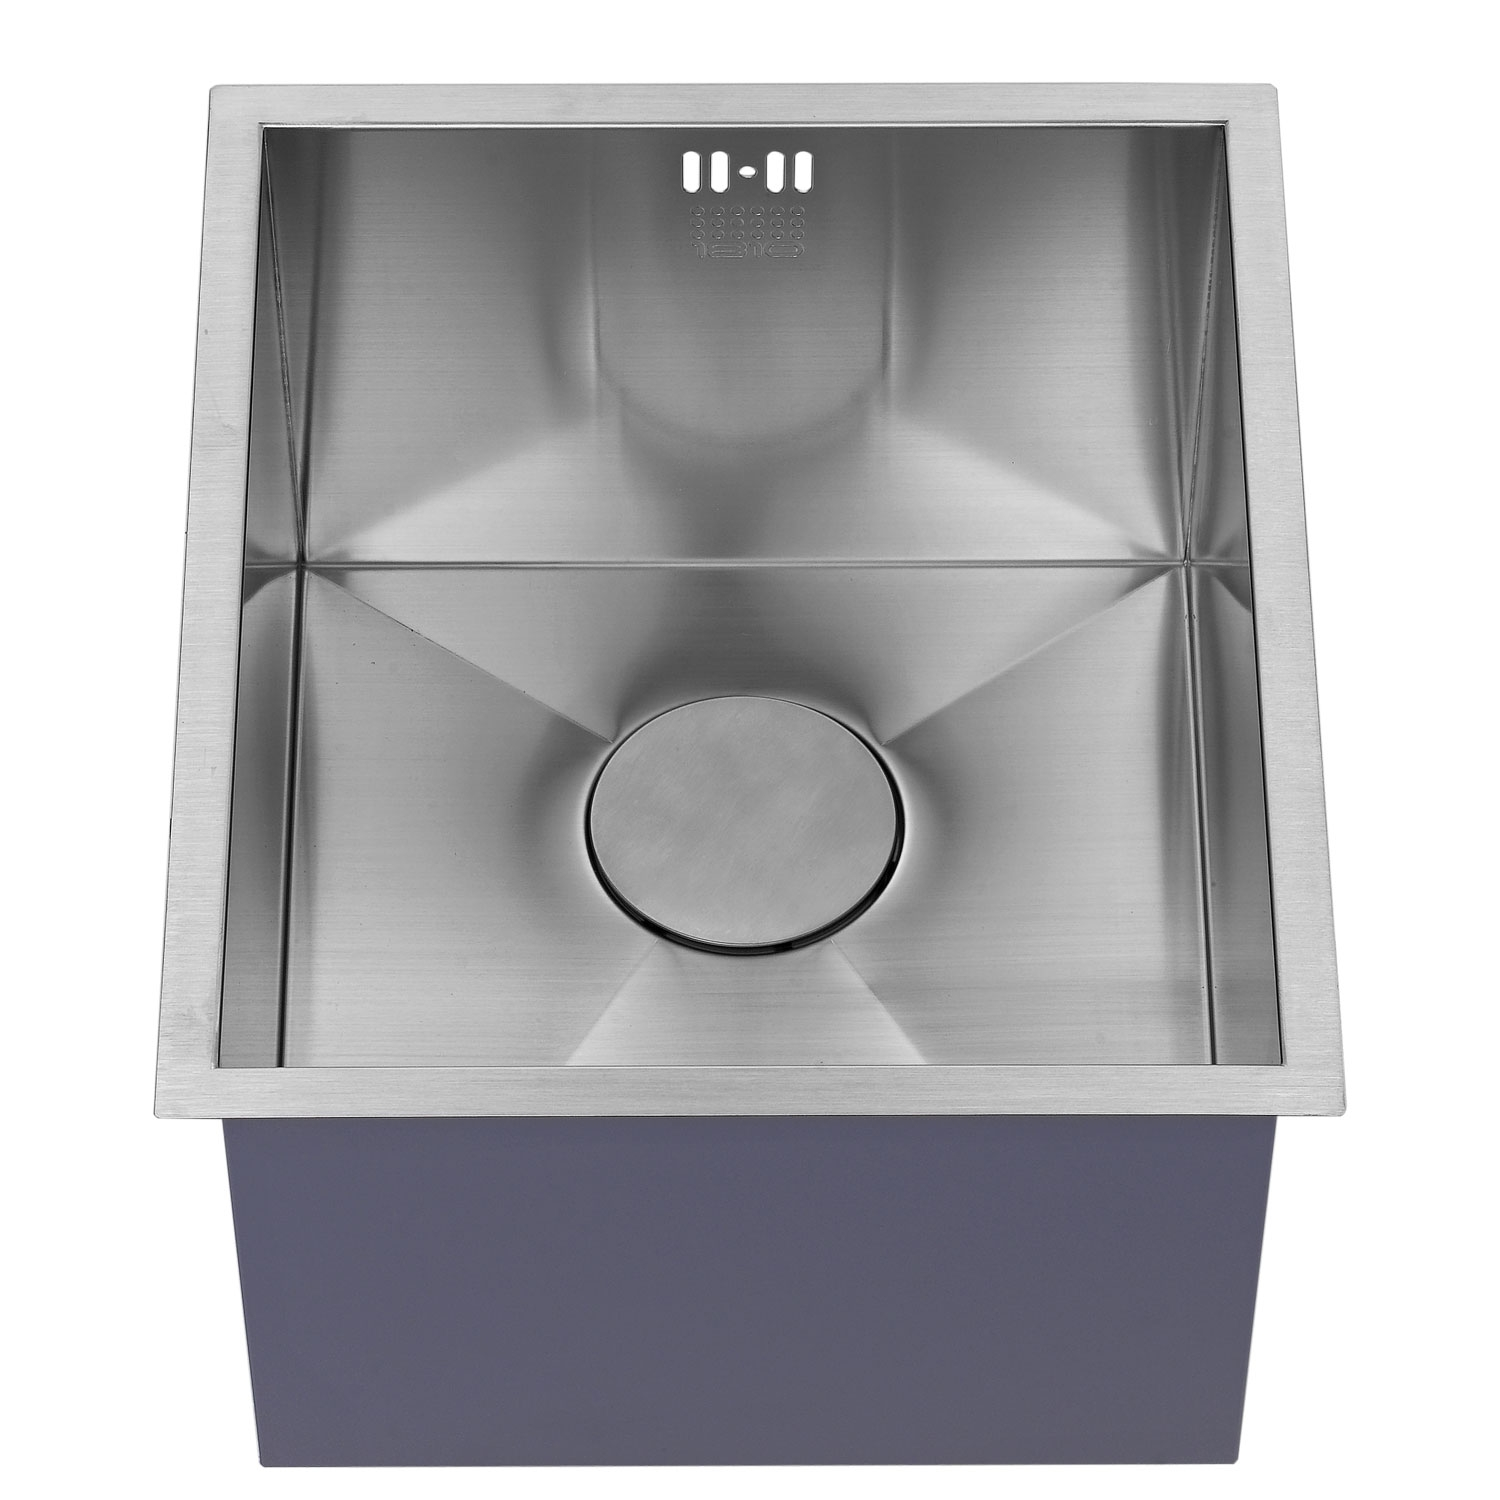 The 1810 Company Zenuno 340U Deep 1.0 Bowl Kitchen Sink - Stainless Steel